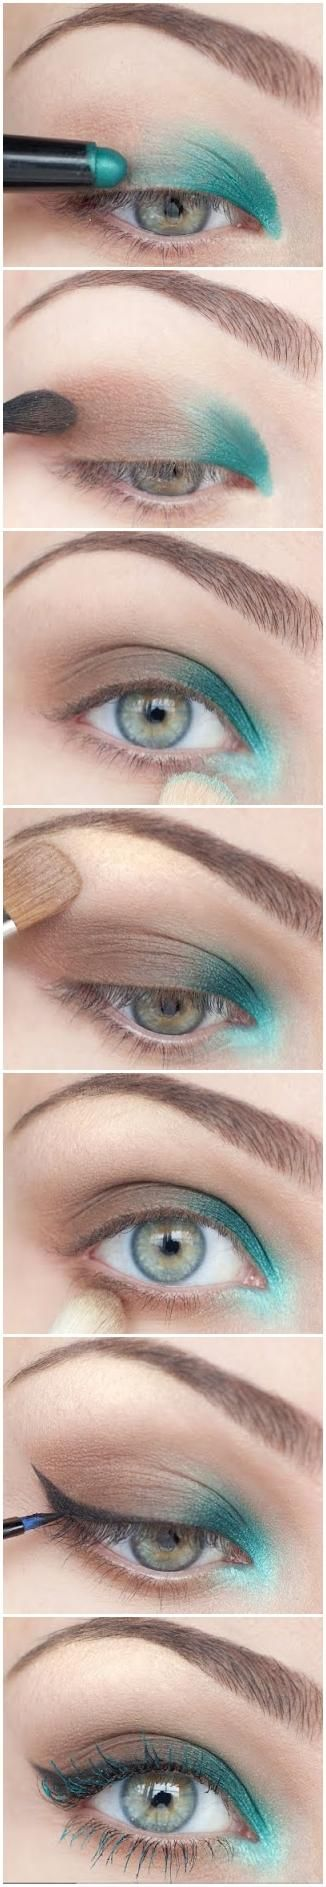 reverse smokey eye with a pop of color.   super cool but idk if i could ever actually pull it off...